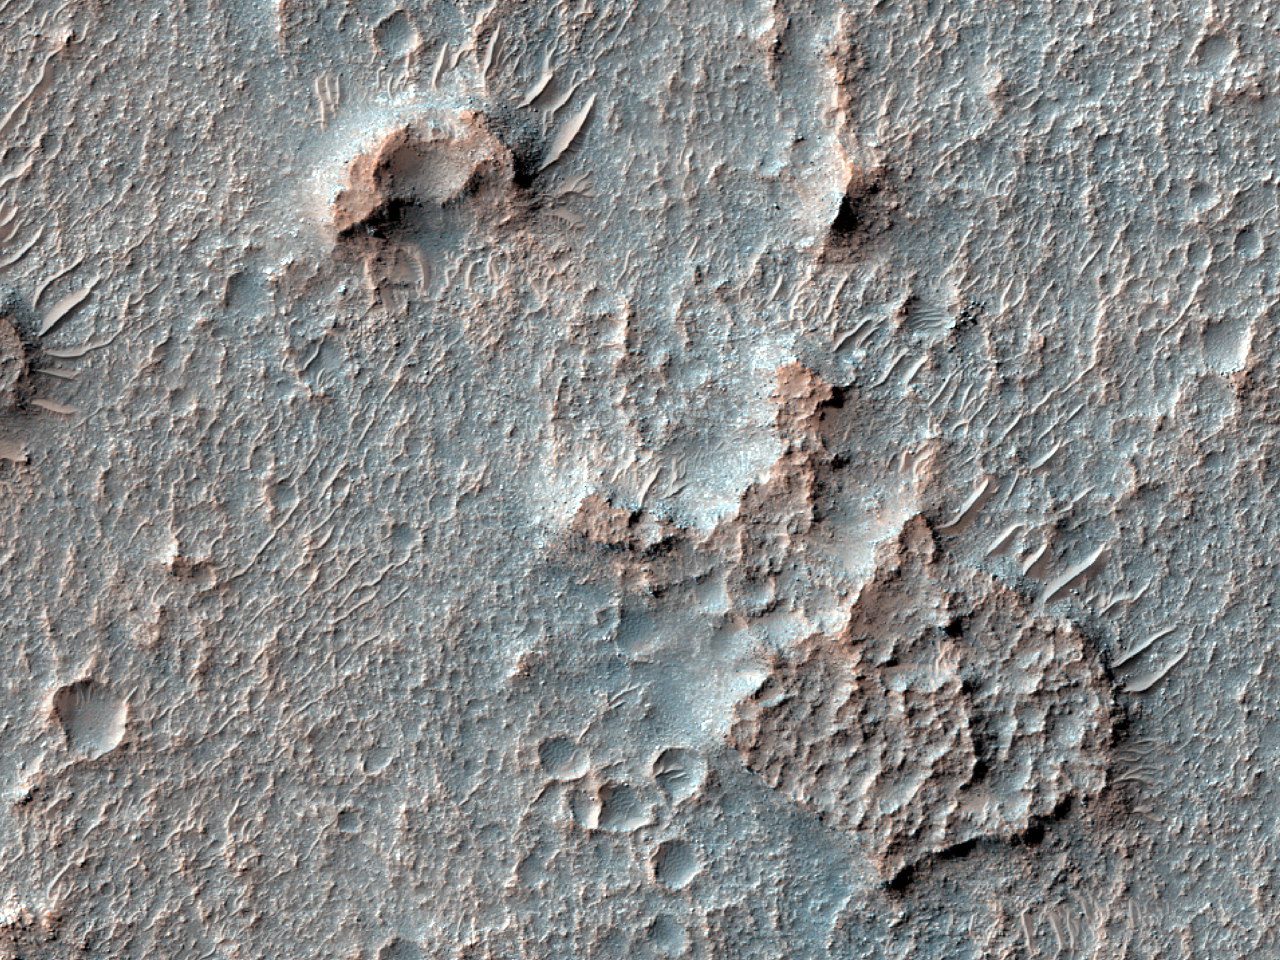 Bedrock Exposures in Terra Sabaea